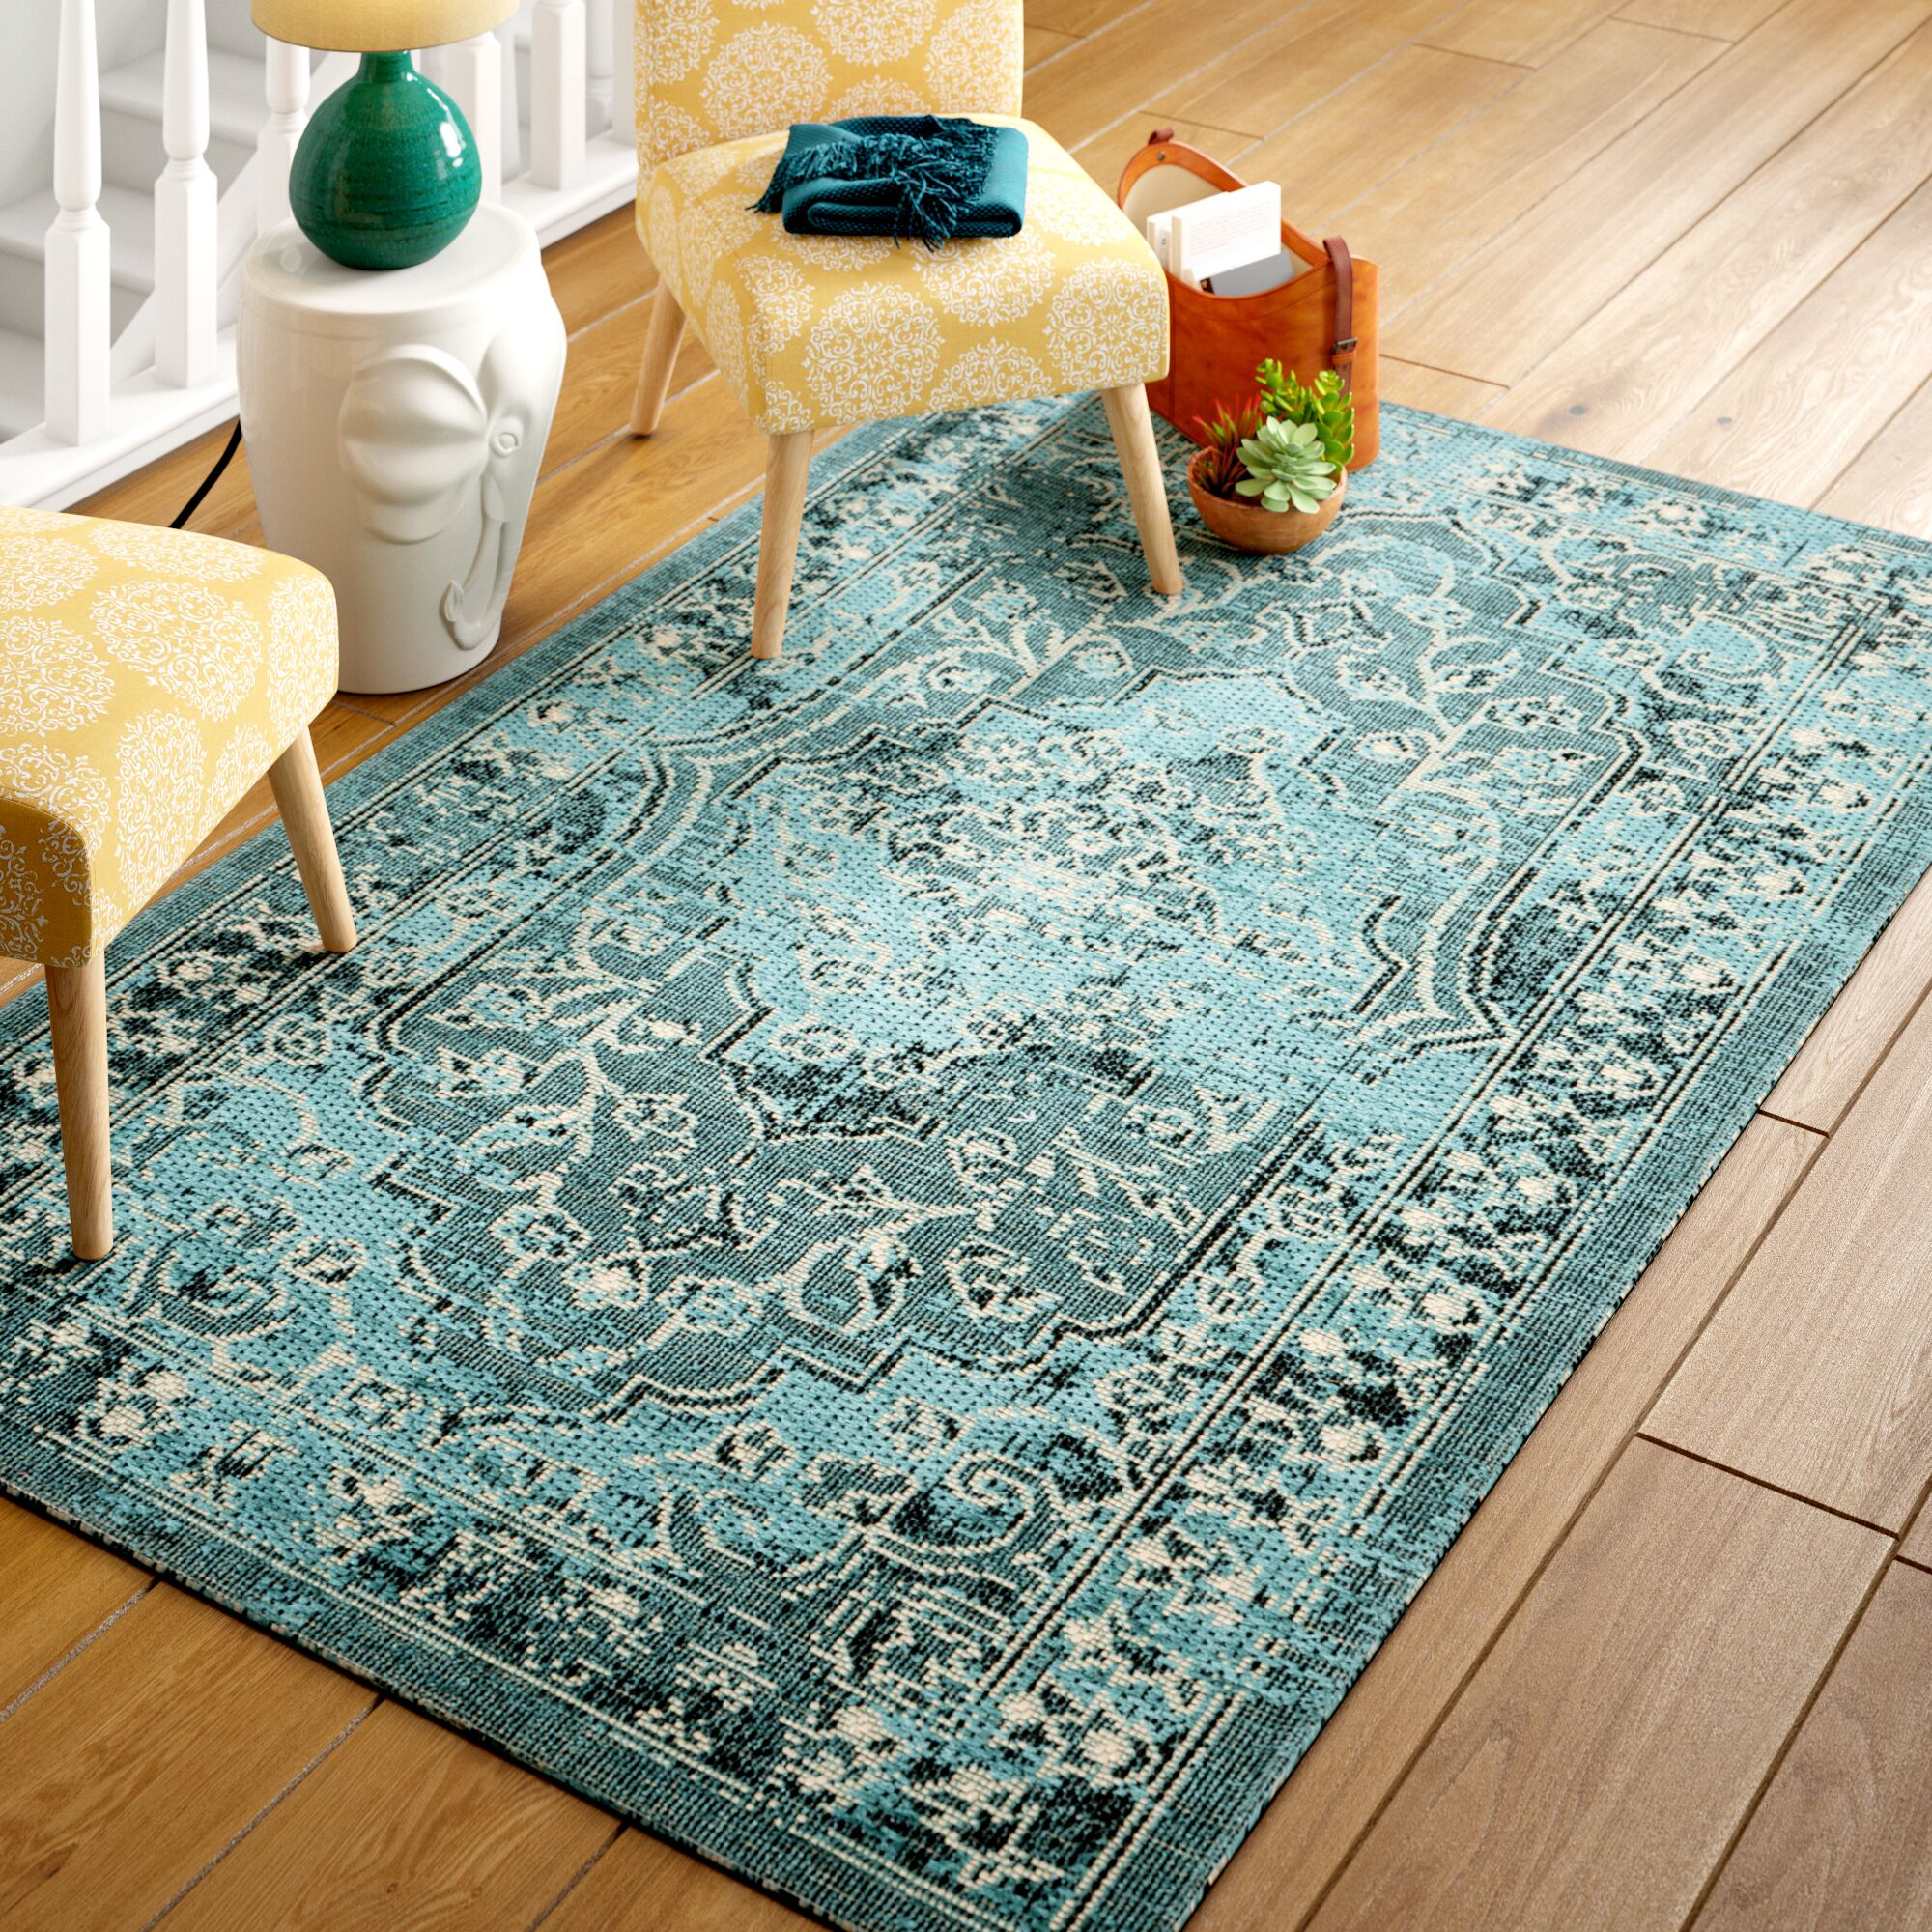 Port Laguerre Turquoise Area Rug Rug Size: Rectangular 8' x 11'